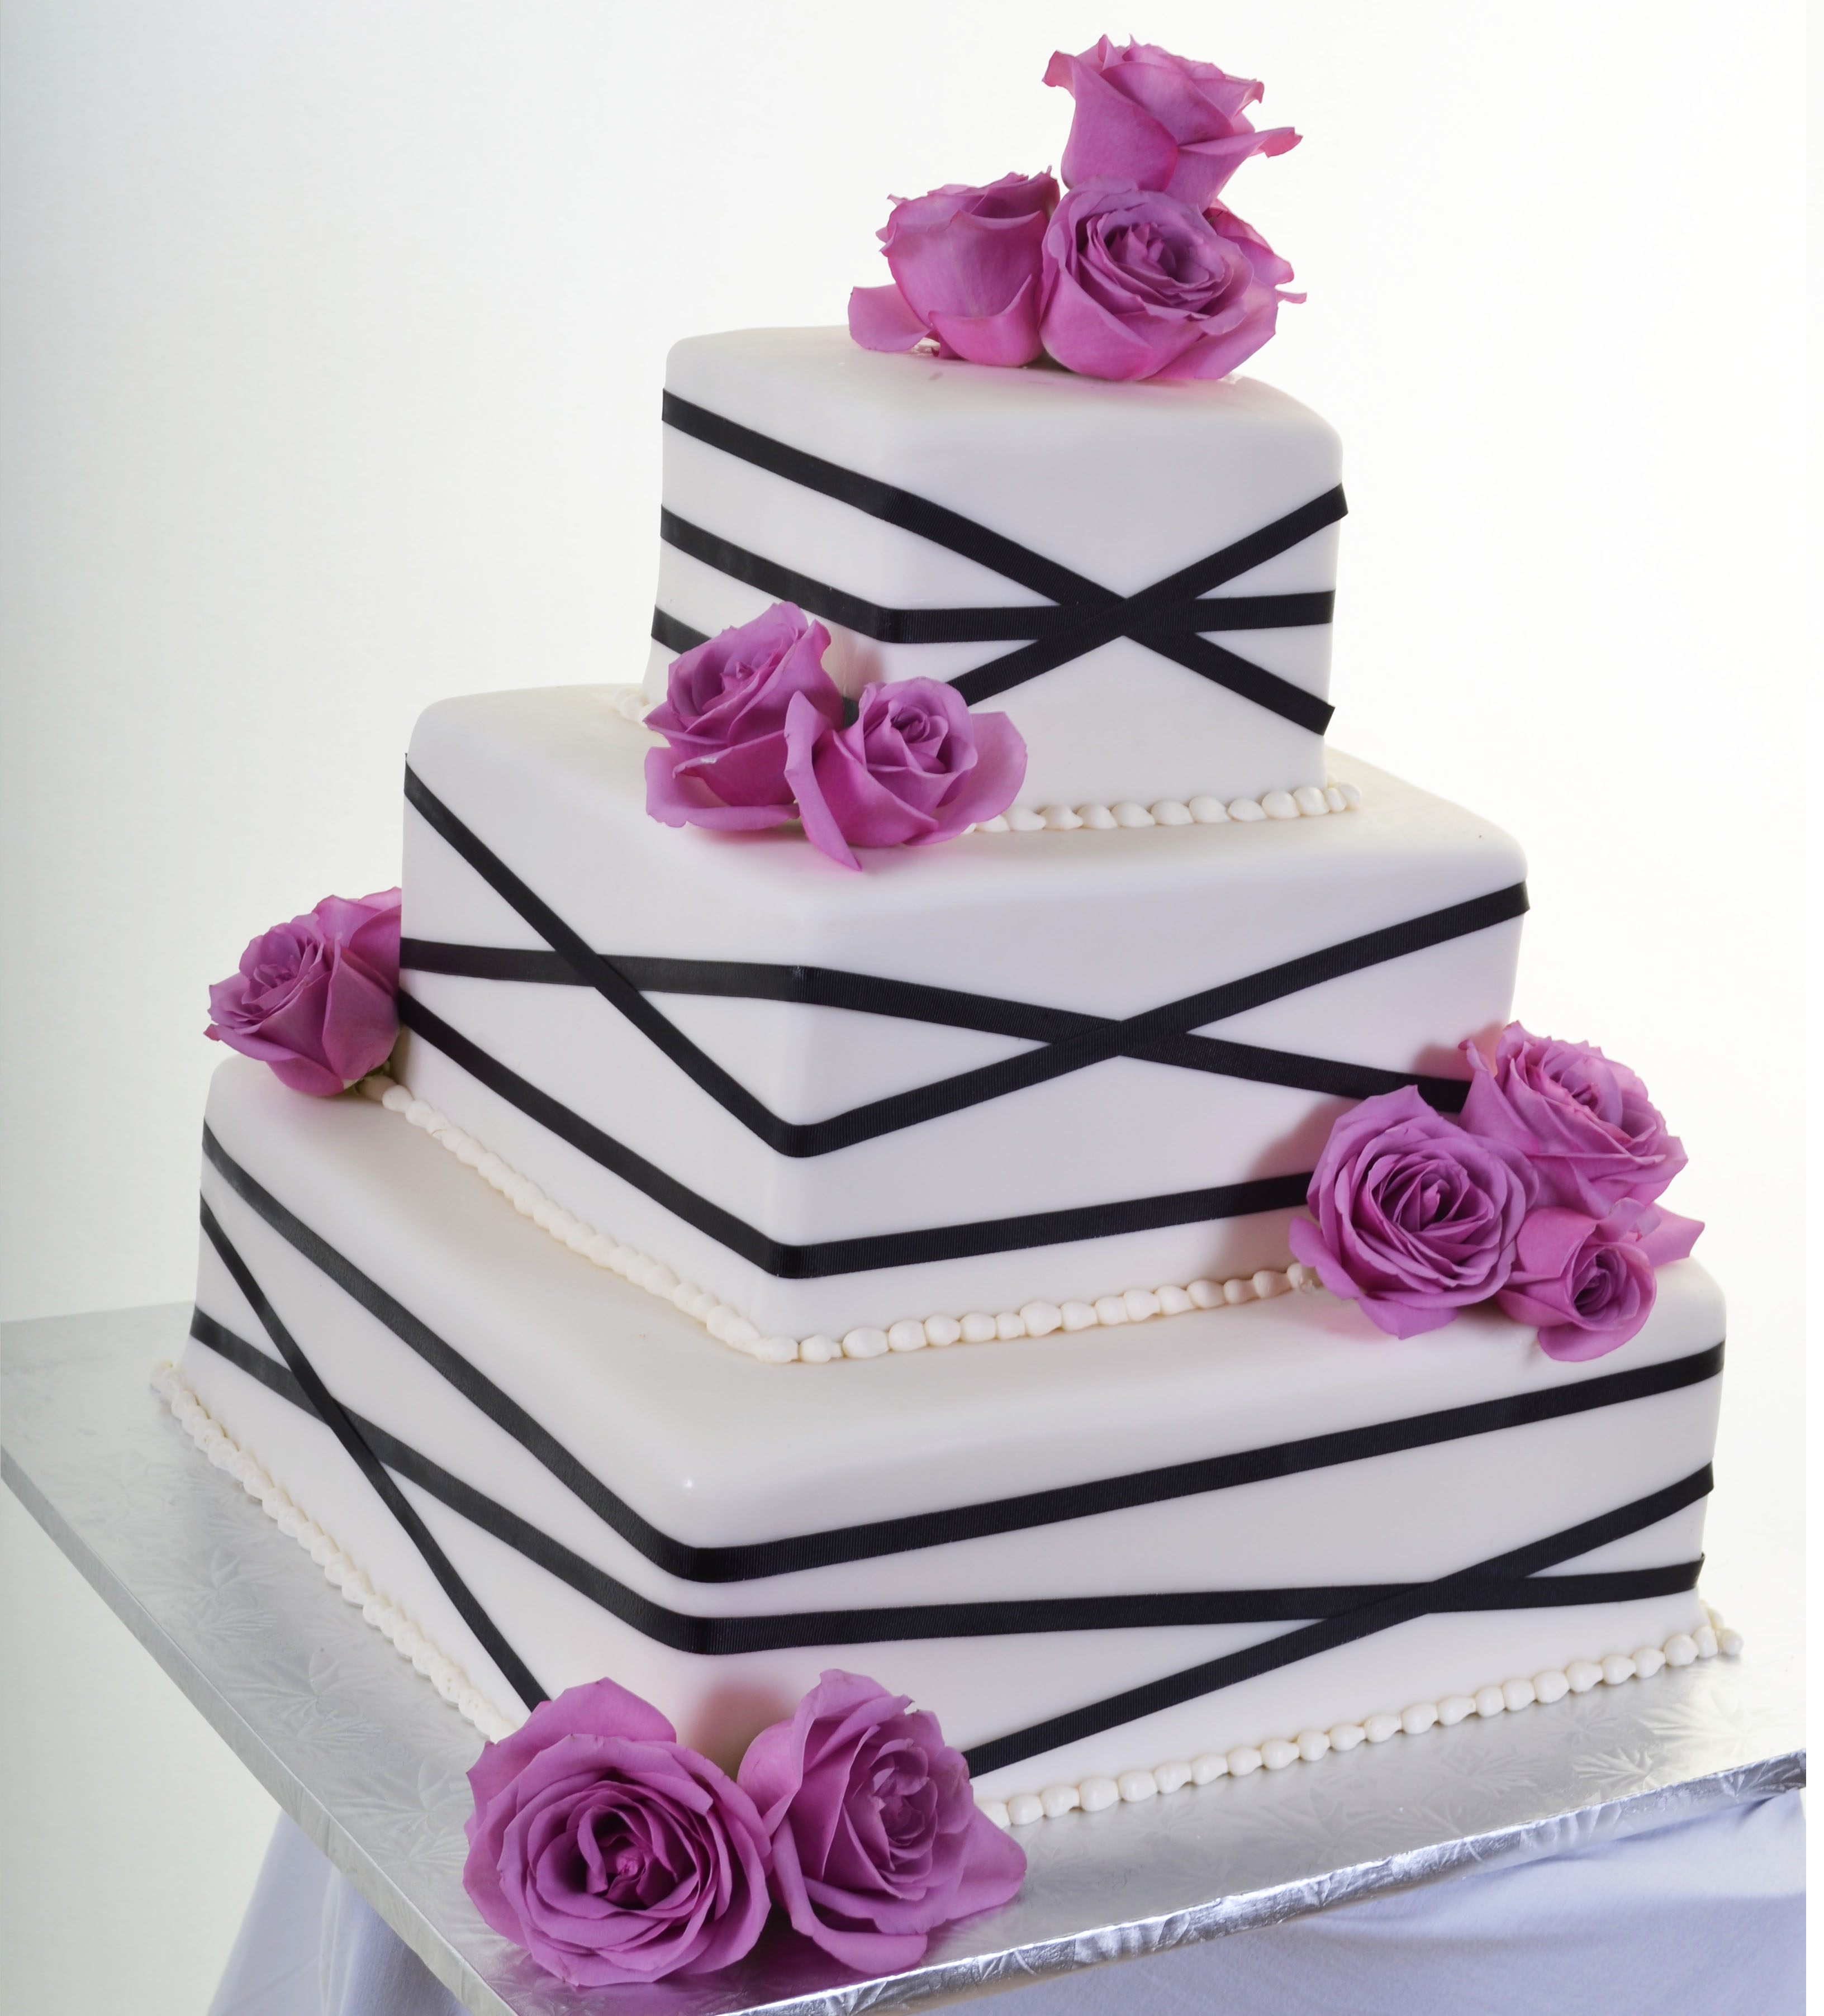 Pastry Palace Las Vegas - Wedding Cake 808 - Squares of Abstract